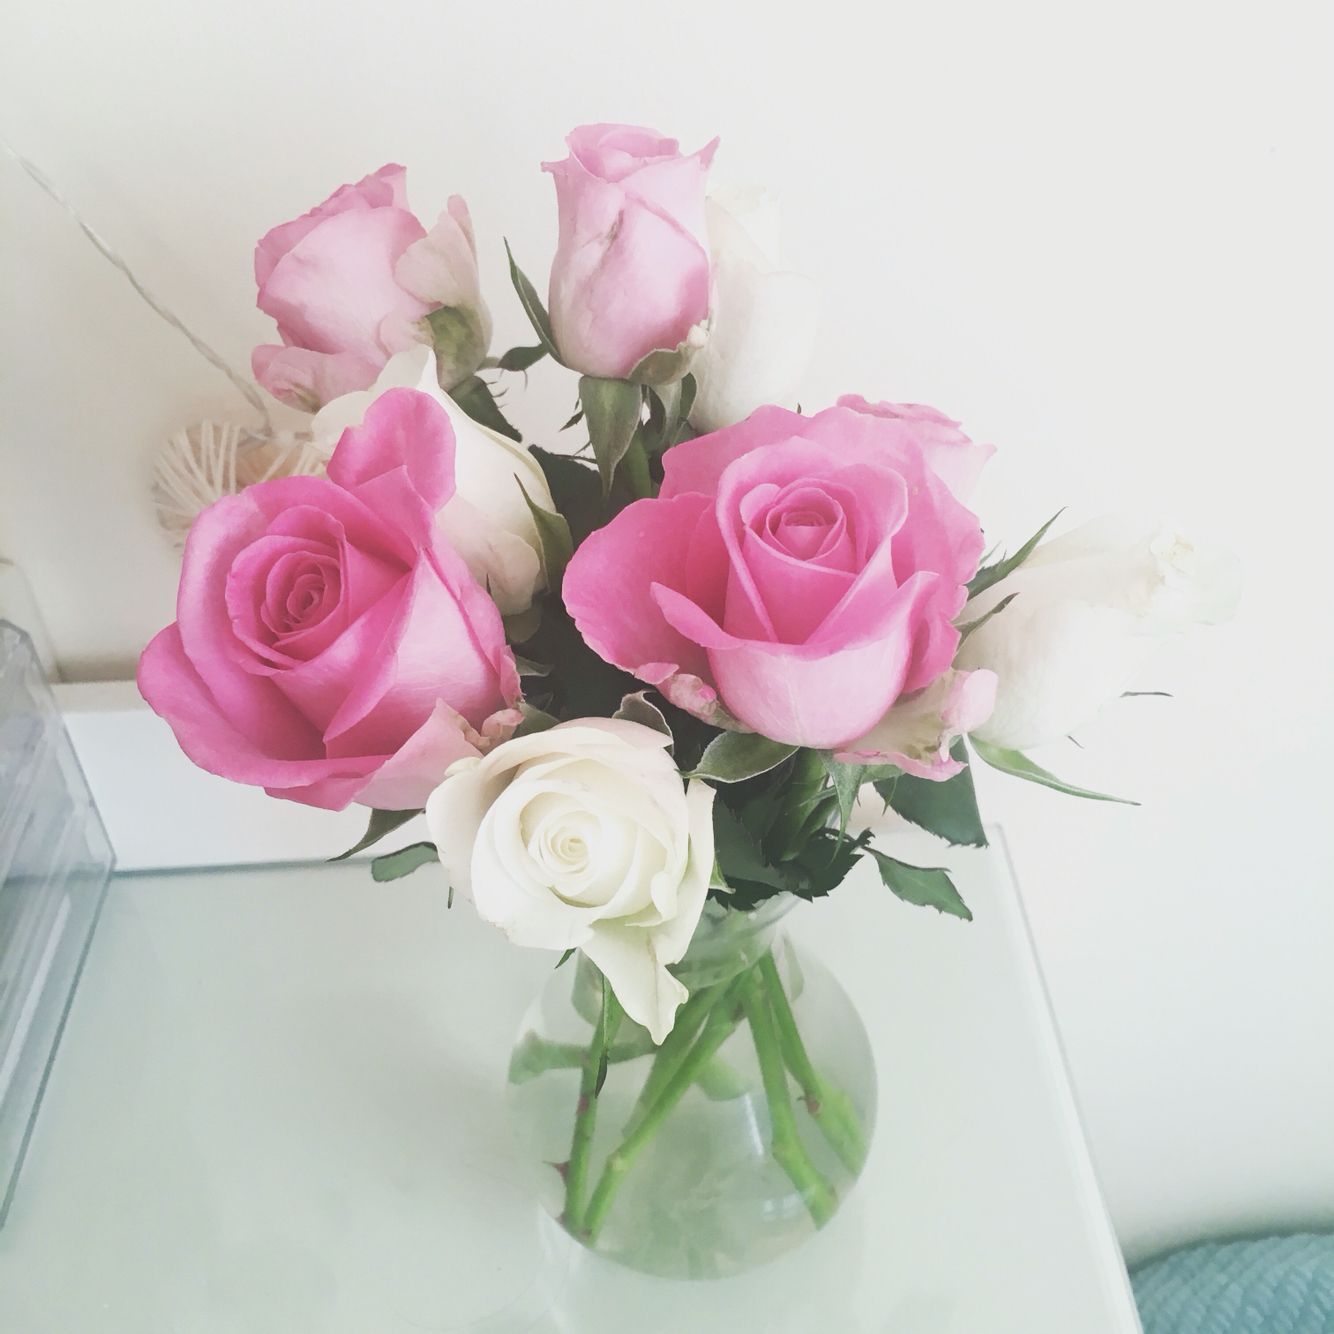 Lovely pink and white roses to freshen up my room